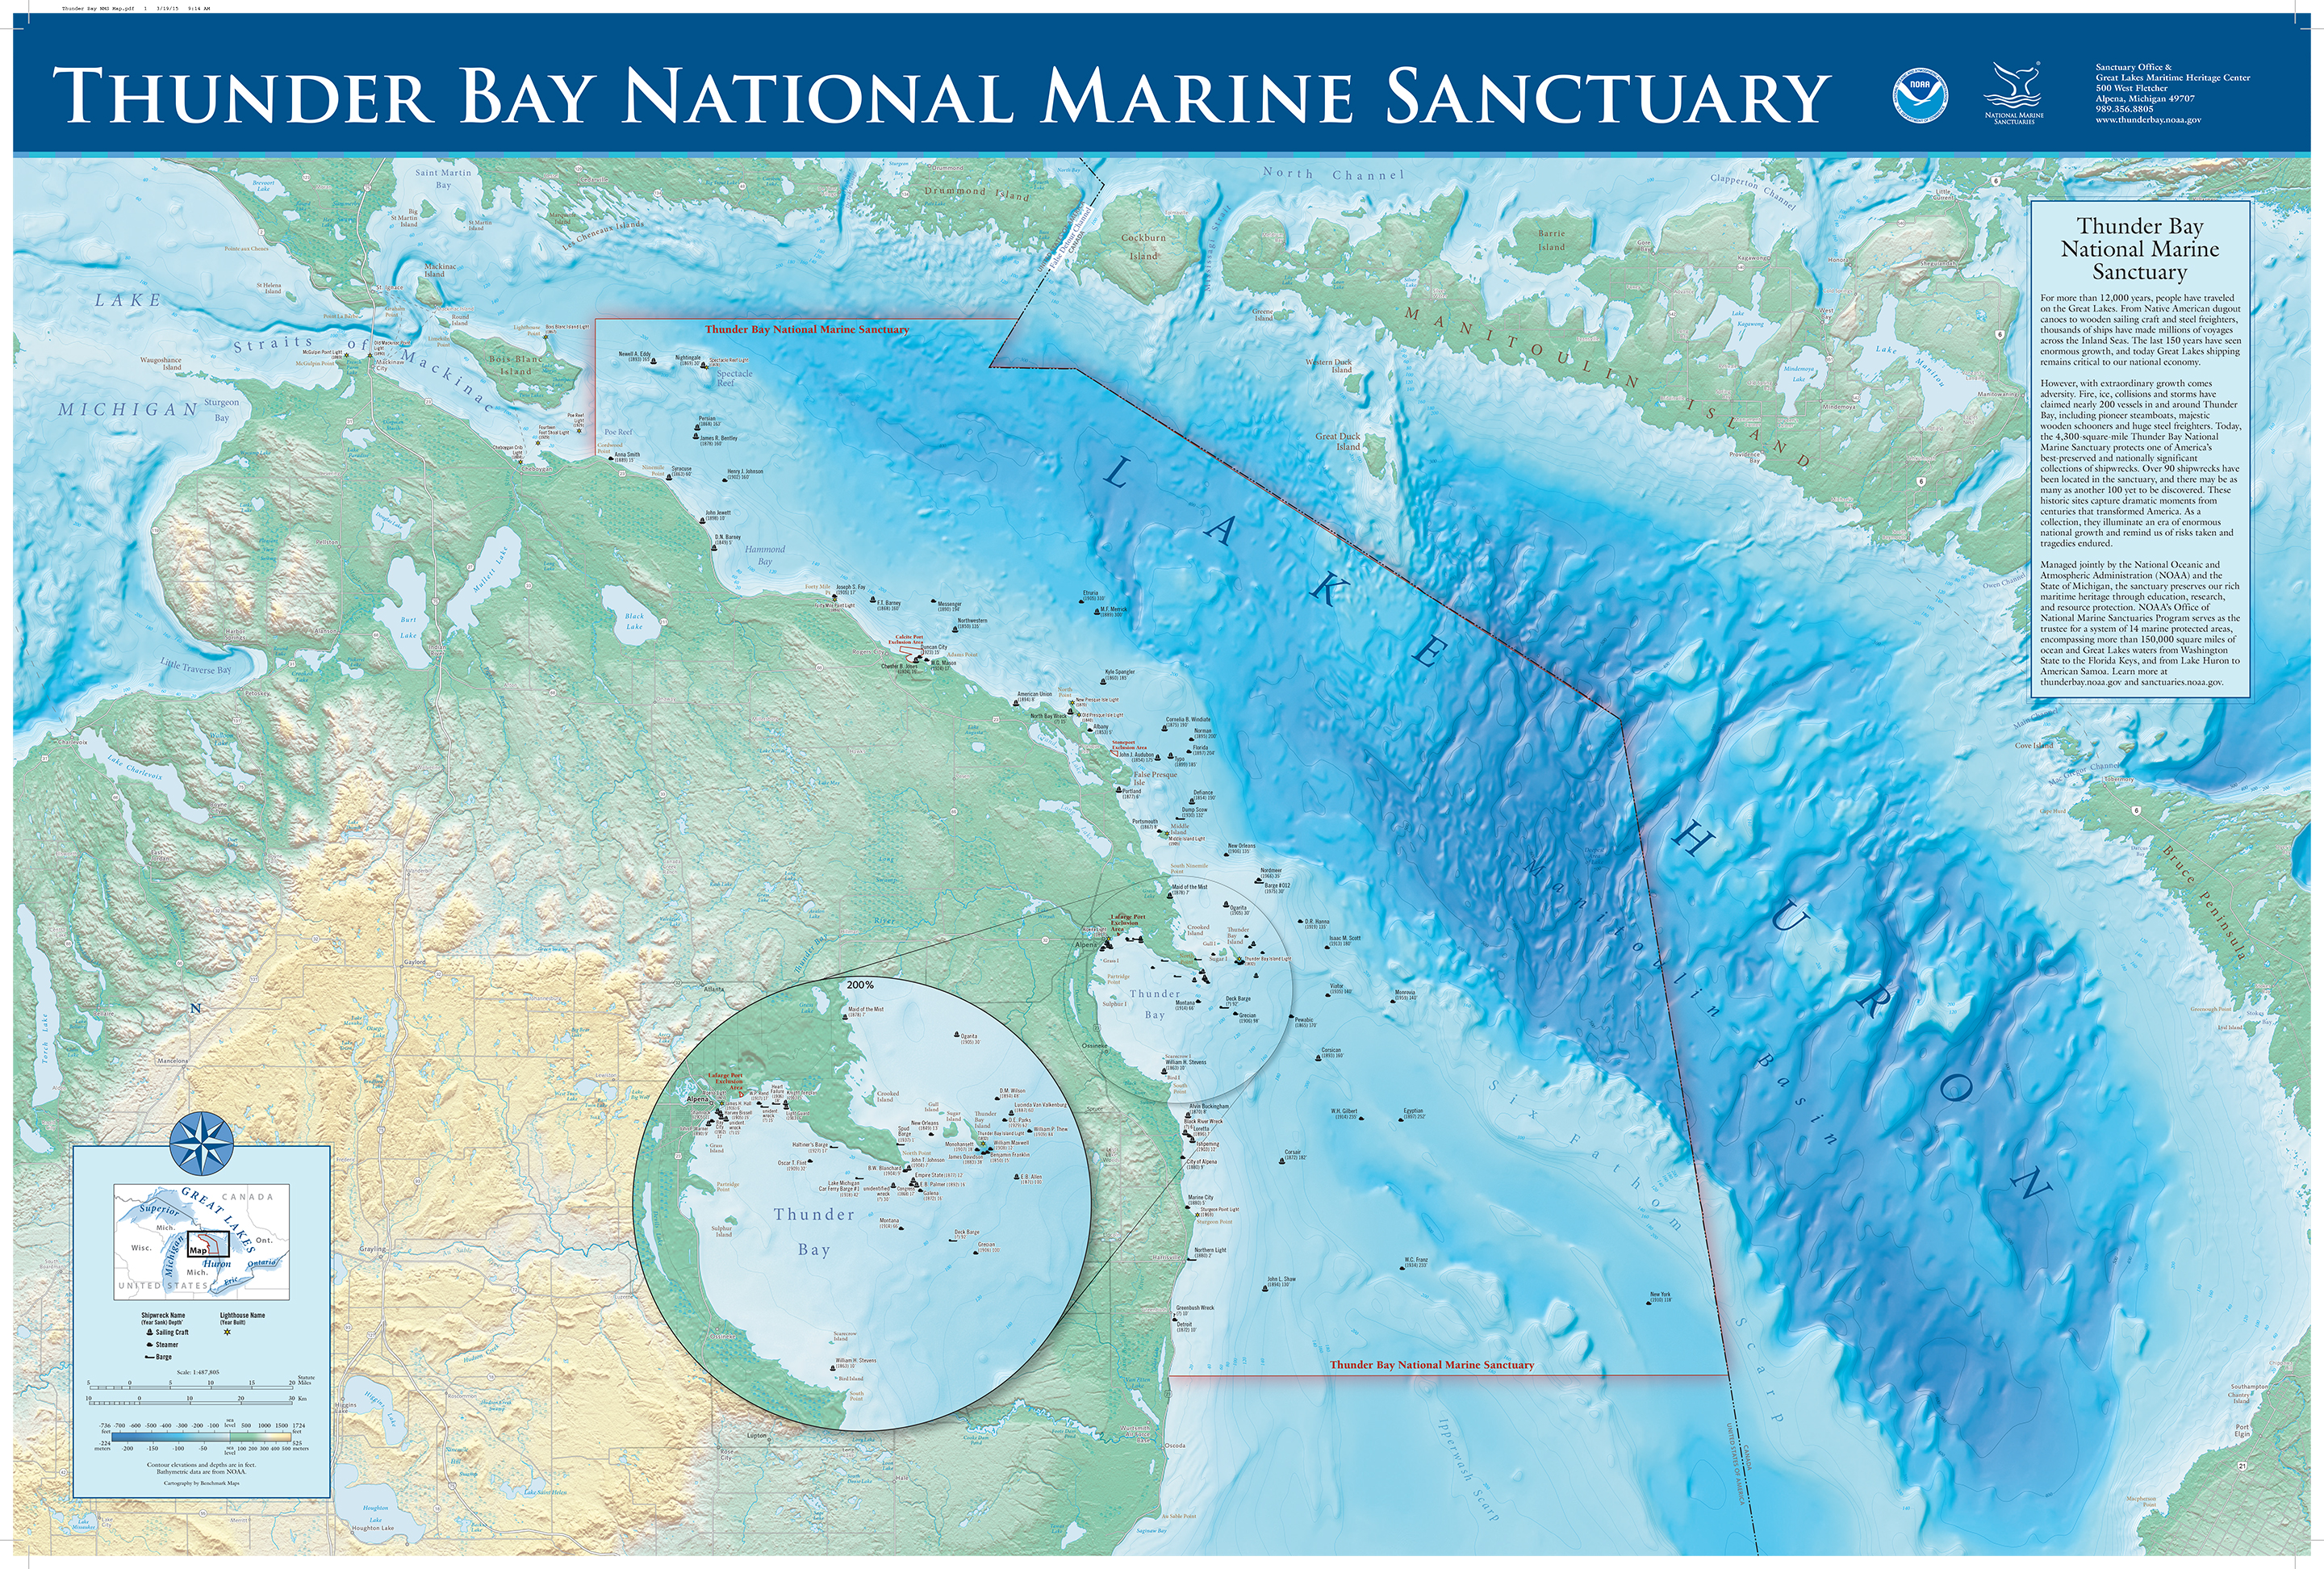 Thunder Bay National Marine Sanctuary Expansion